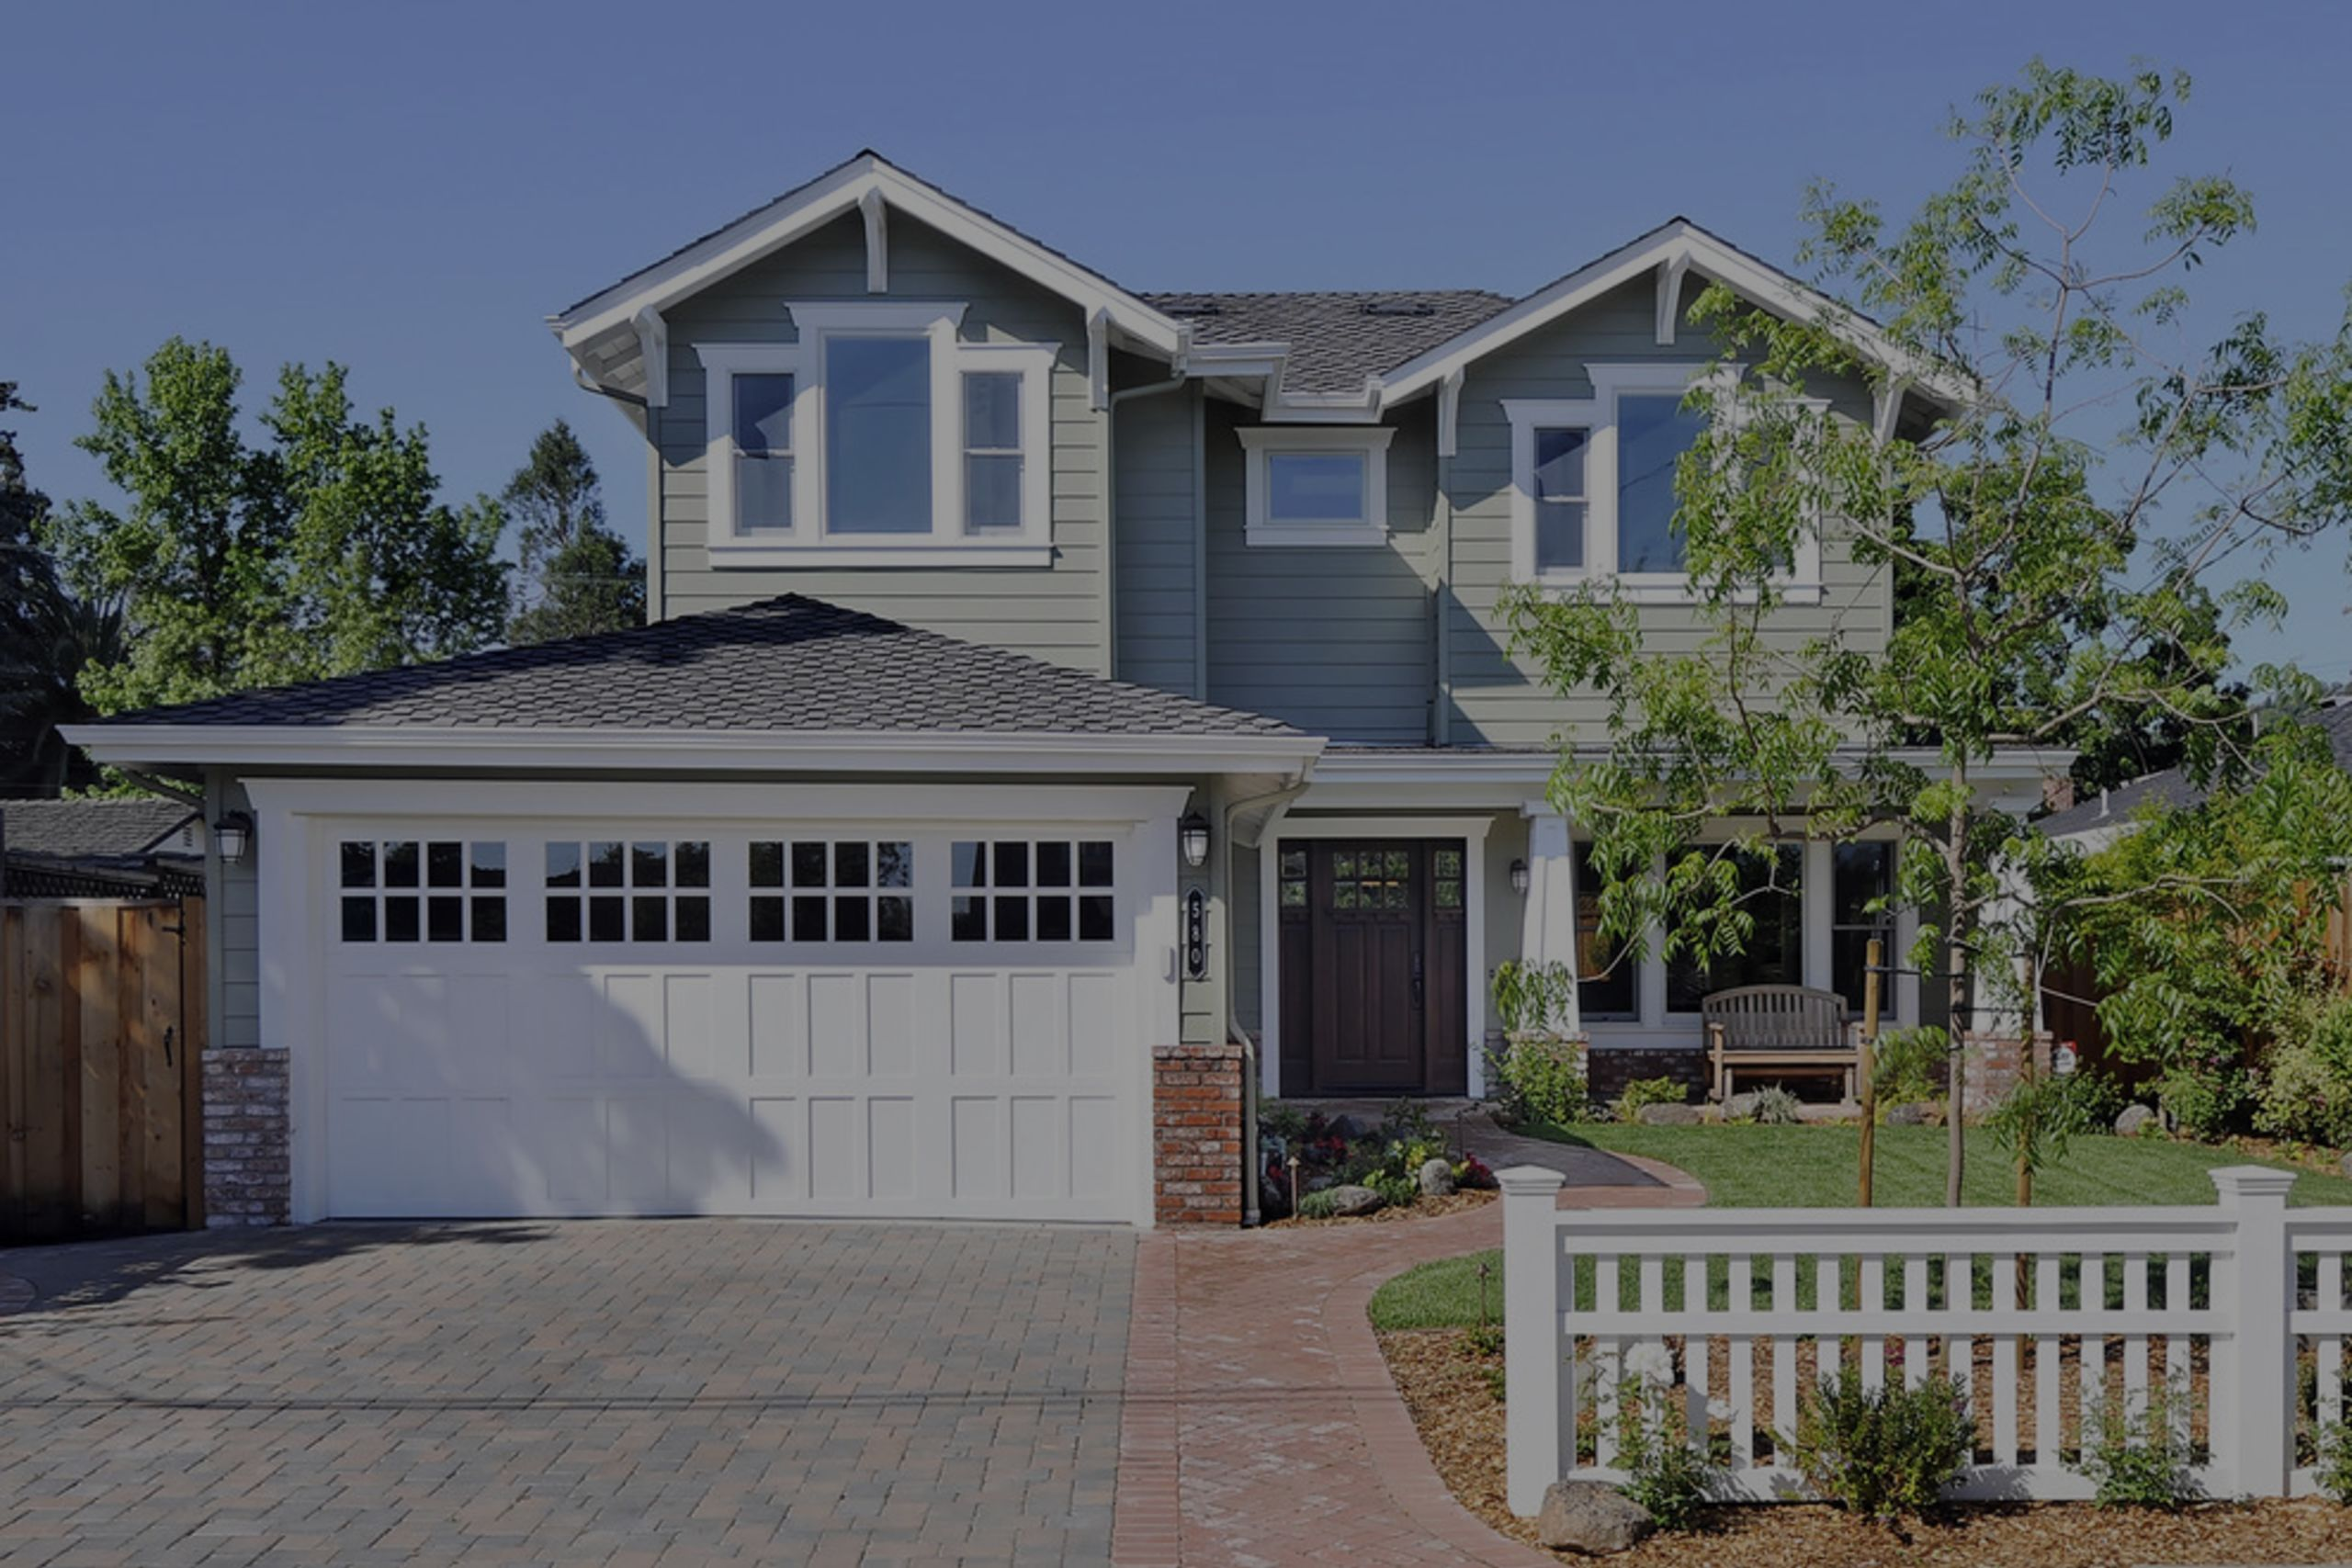 Garage Door Care: What Should Go Up Should Come Down